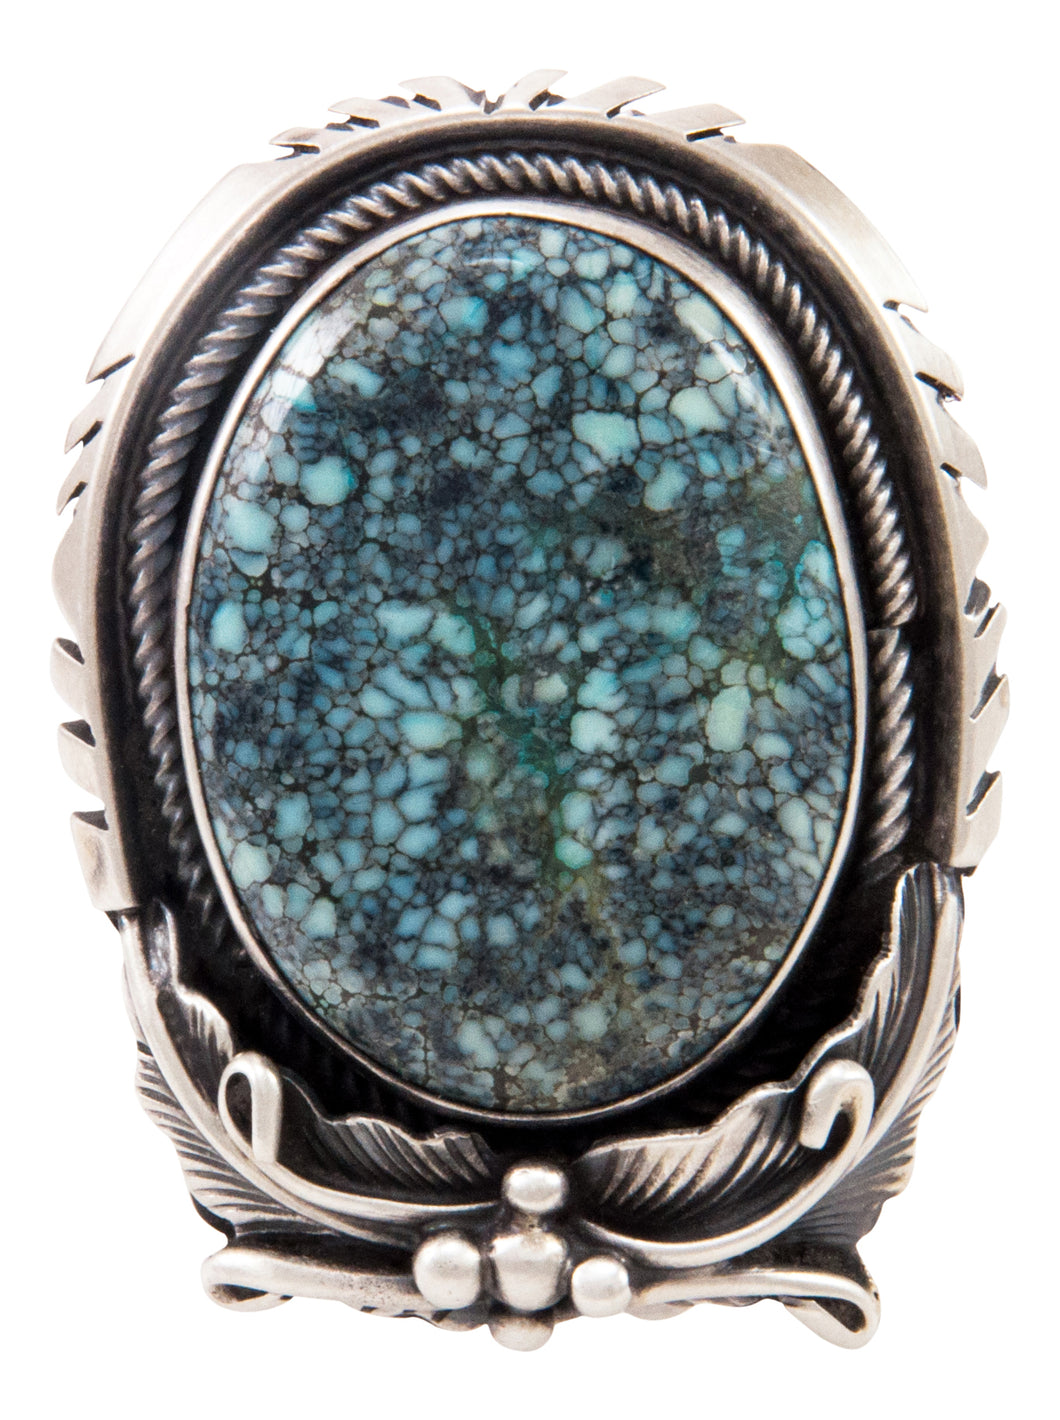 Navajo Native American New Lander Turquoise Ring Size 6 1/4 by Chee SKU233020